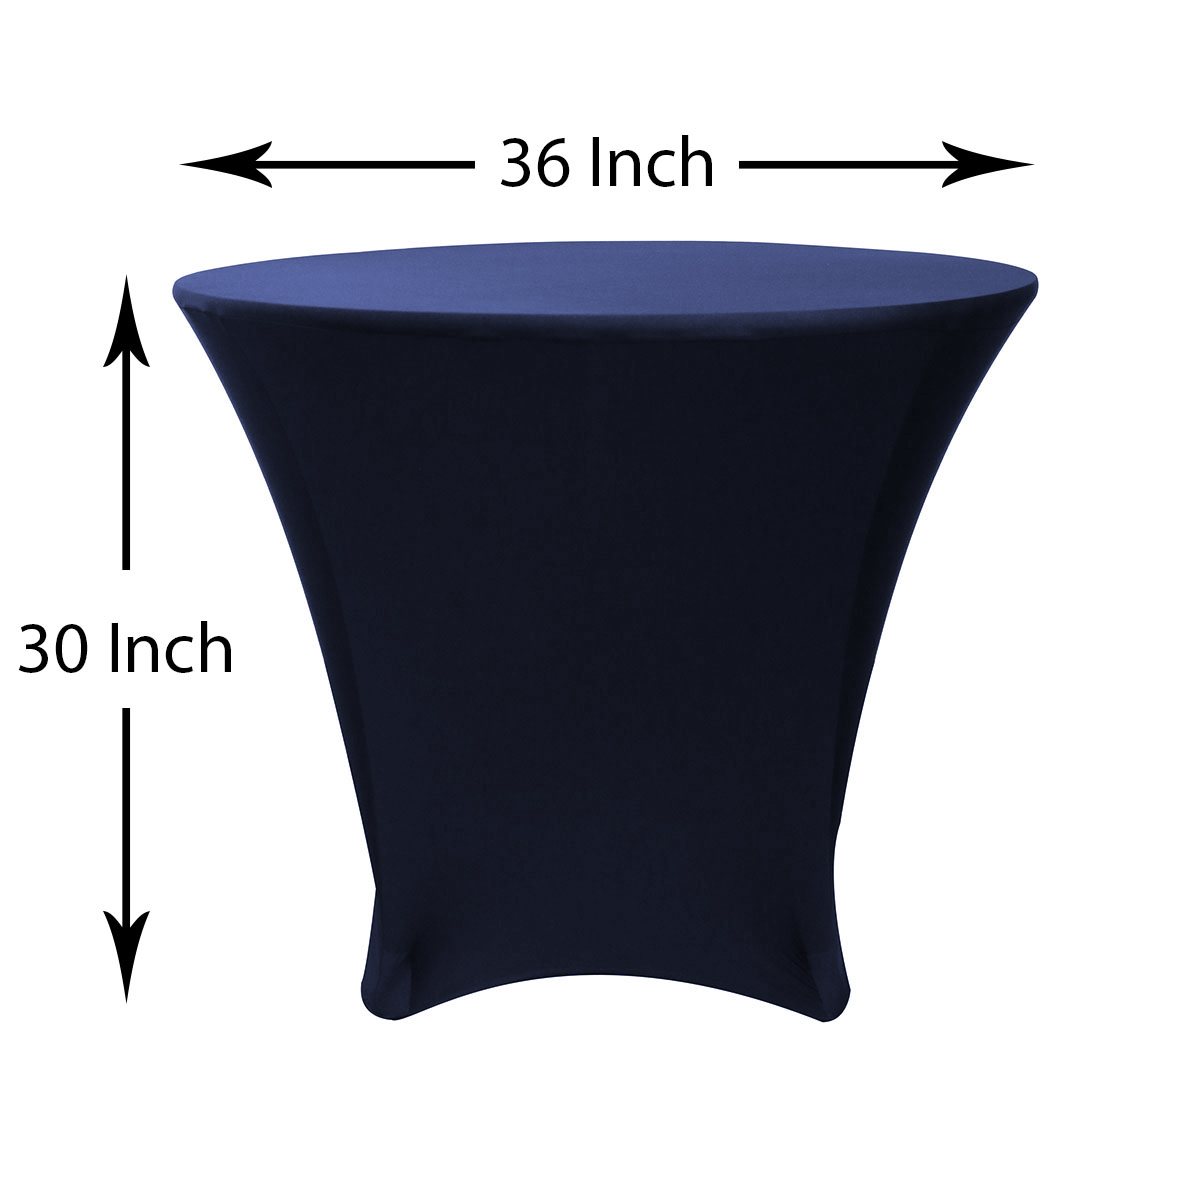 36-30-inch-lowboy-cocktail-spandex-table-covers-navy-dimensions.jpg